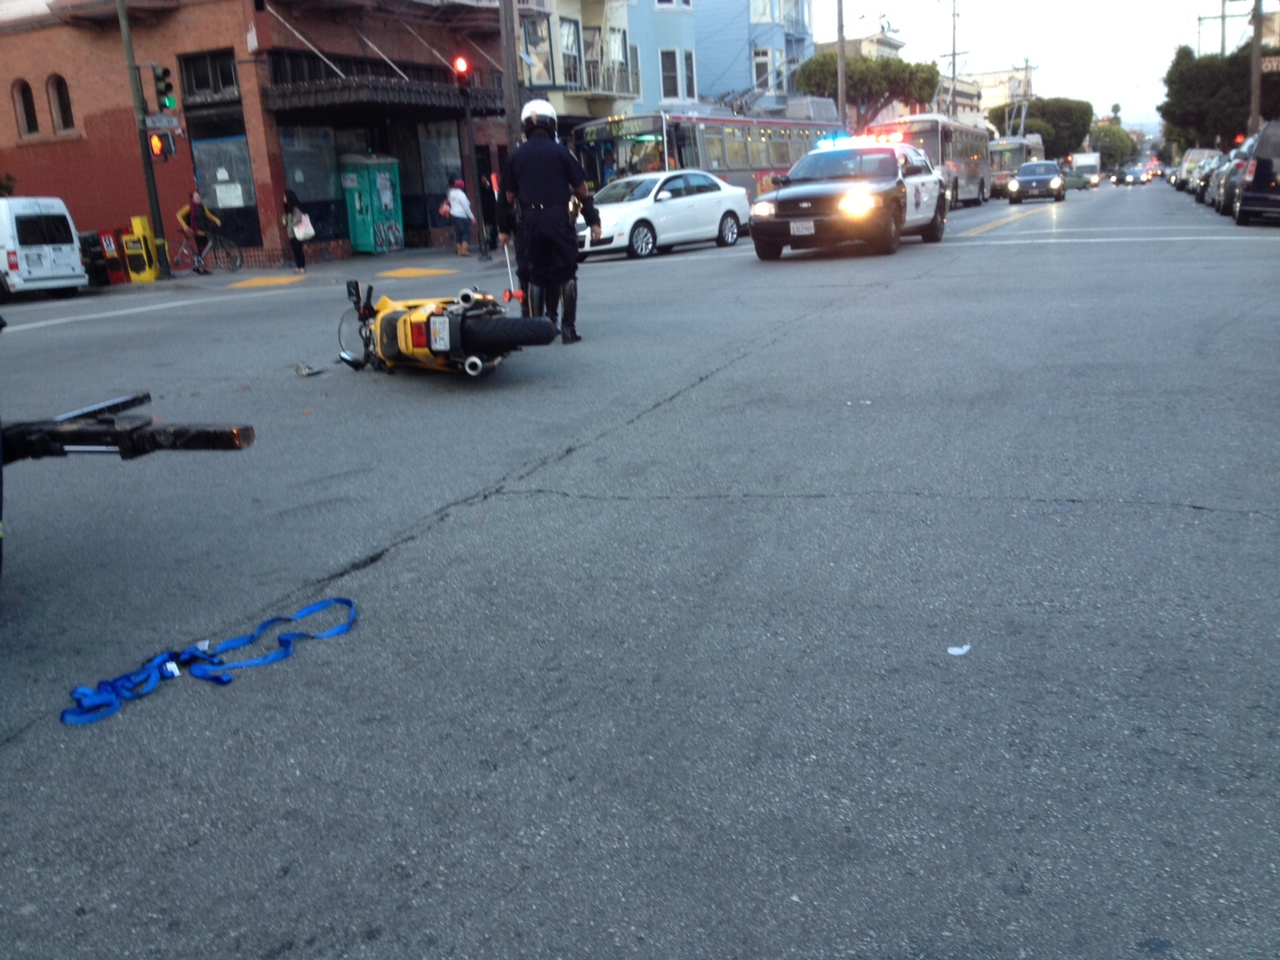 The scene at 16th and Guerrero streets. Photo by Lydia Chavez